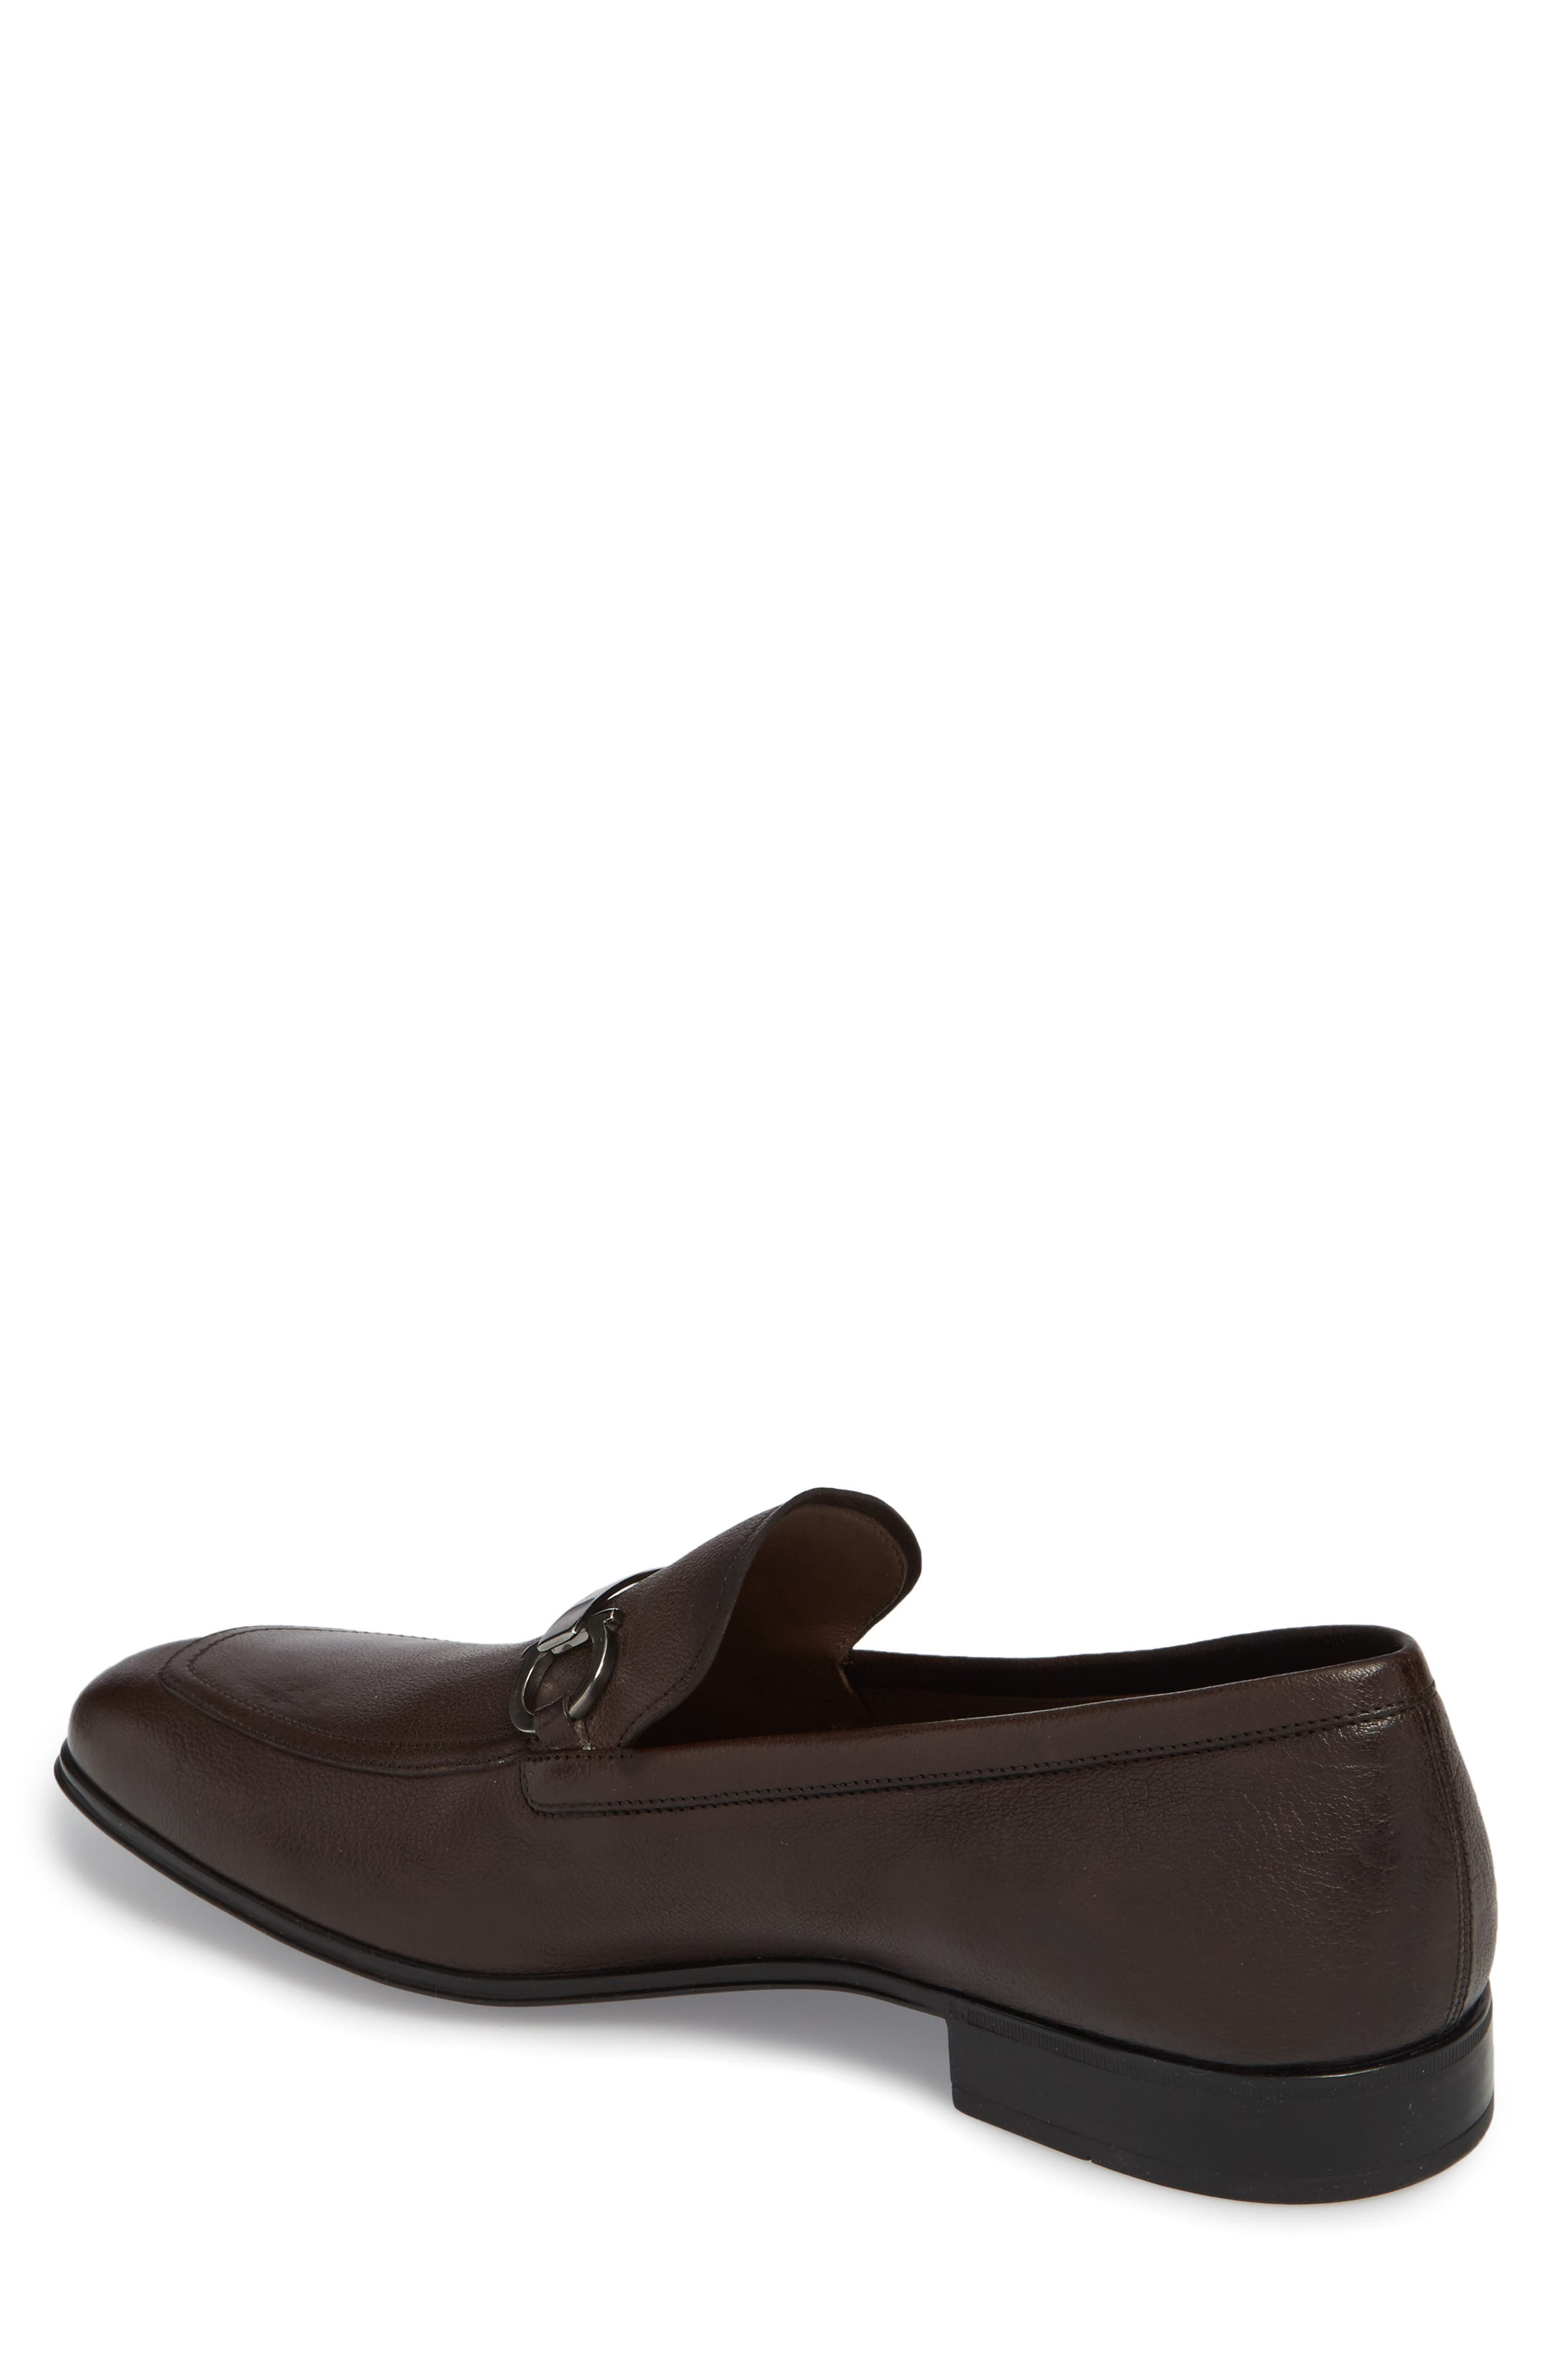 Borges Apron Toe Loafer,                             Alternate thumbnail 2, color,                             Brown Leather